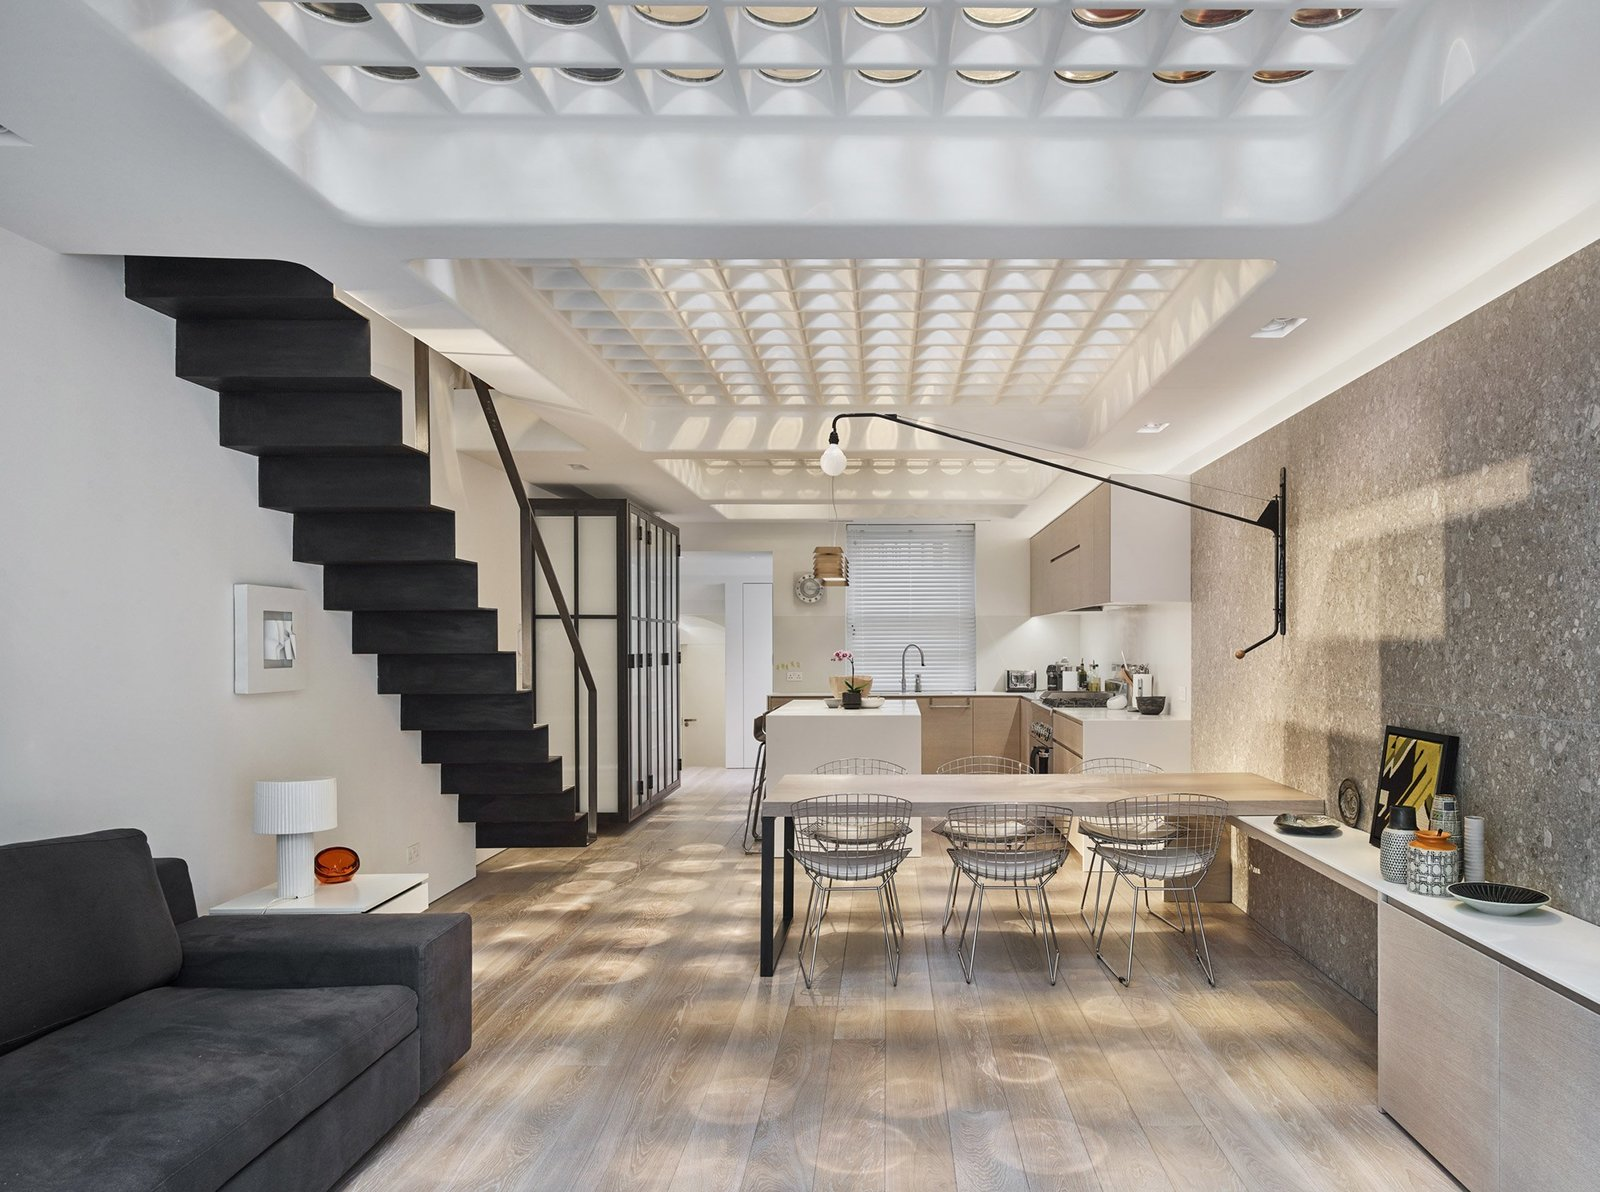 Photo 12 of 12 in Transparent Perforated Circles Bring Light and Movement to This London Terrace House